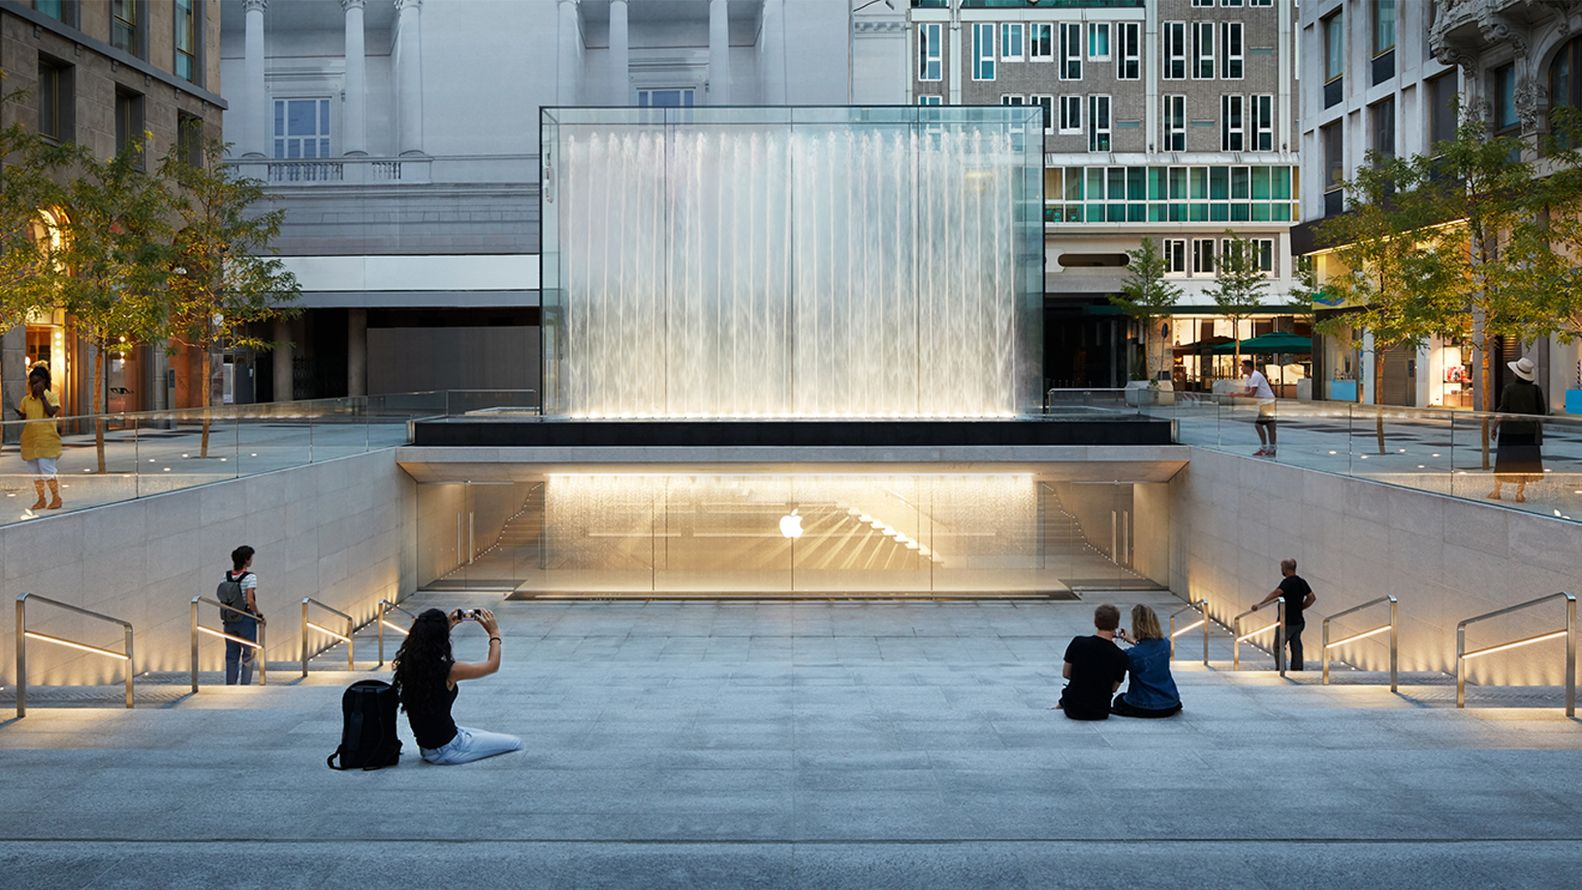 Gallery Of Foster Partners Milan Apple Store Opens To The Public With Dramatic Waterfall Entrance 1 Apple Store Design Milan Store Plaza Design